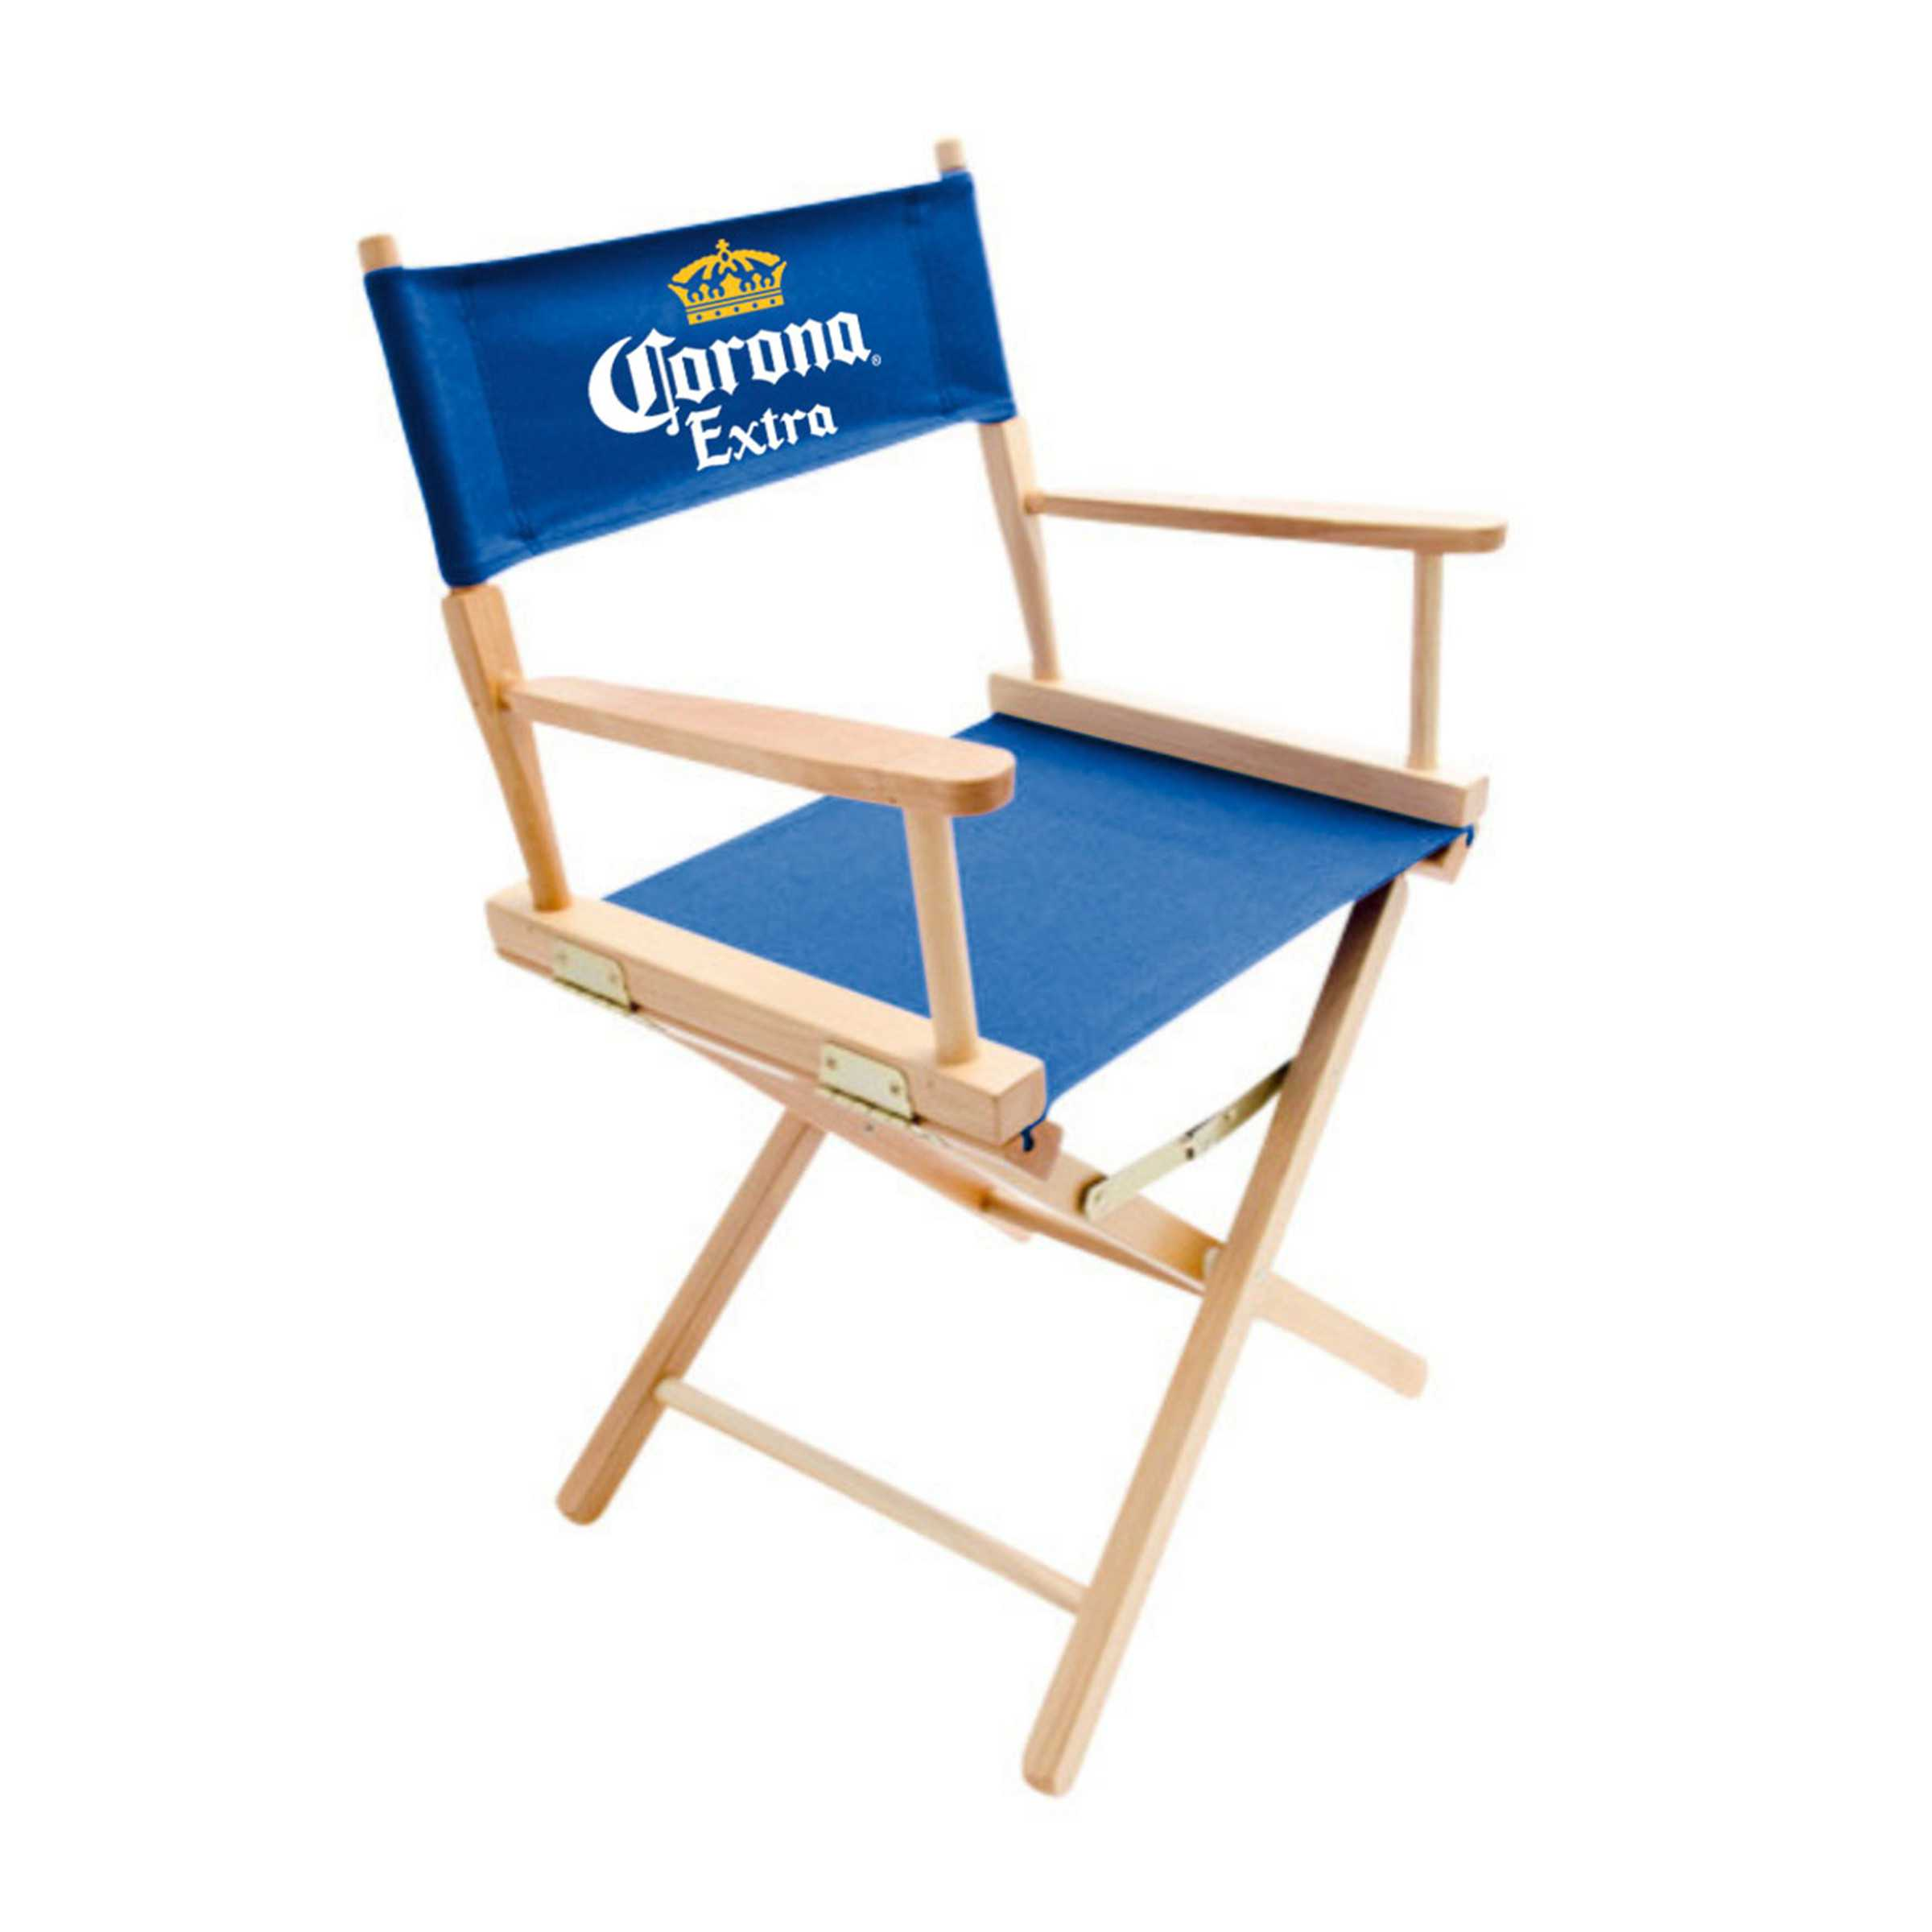 CORONA EXTRA TABLE HEIGHT DIRECTORS CHAIR